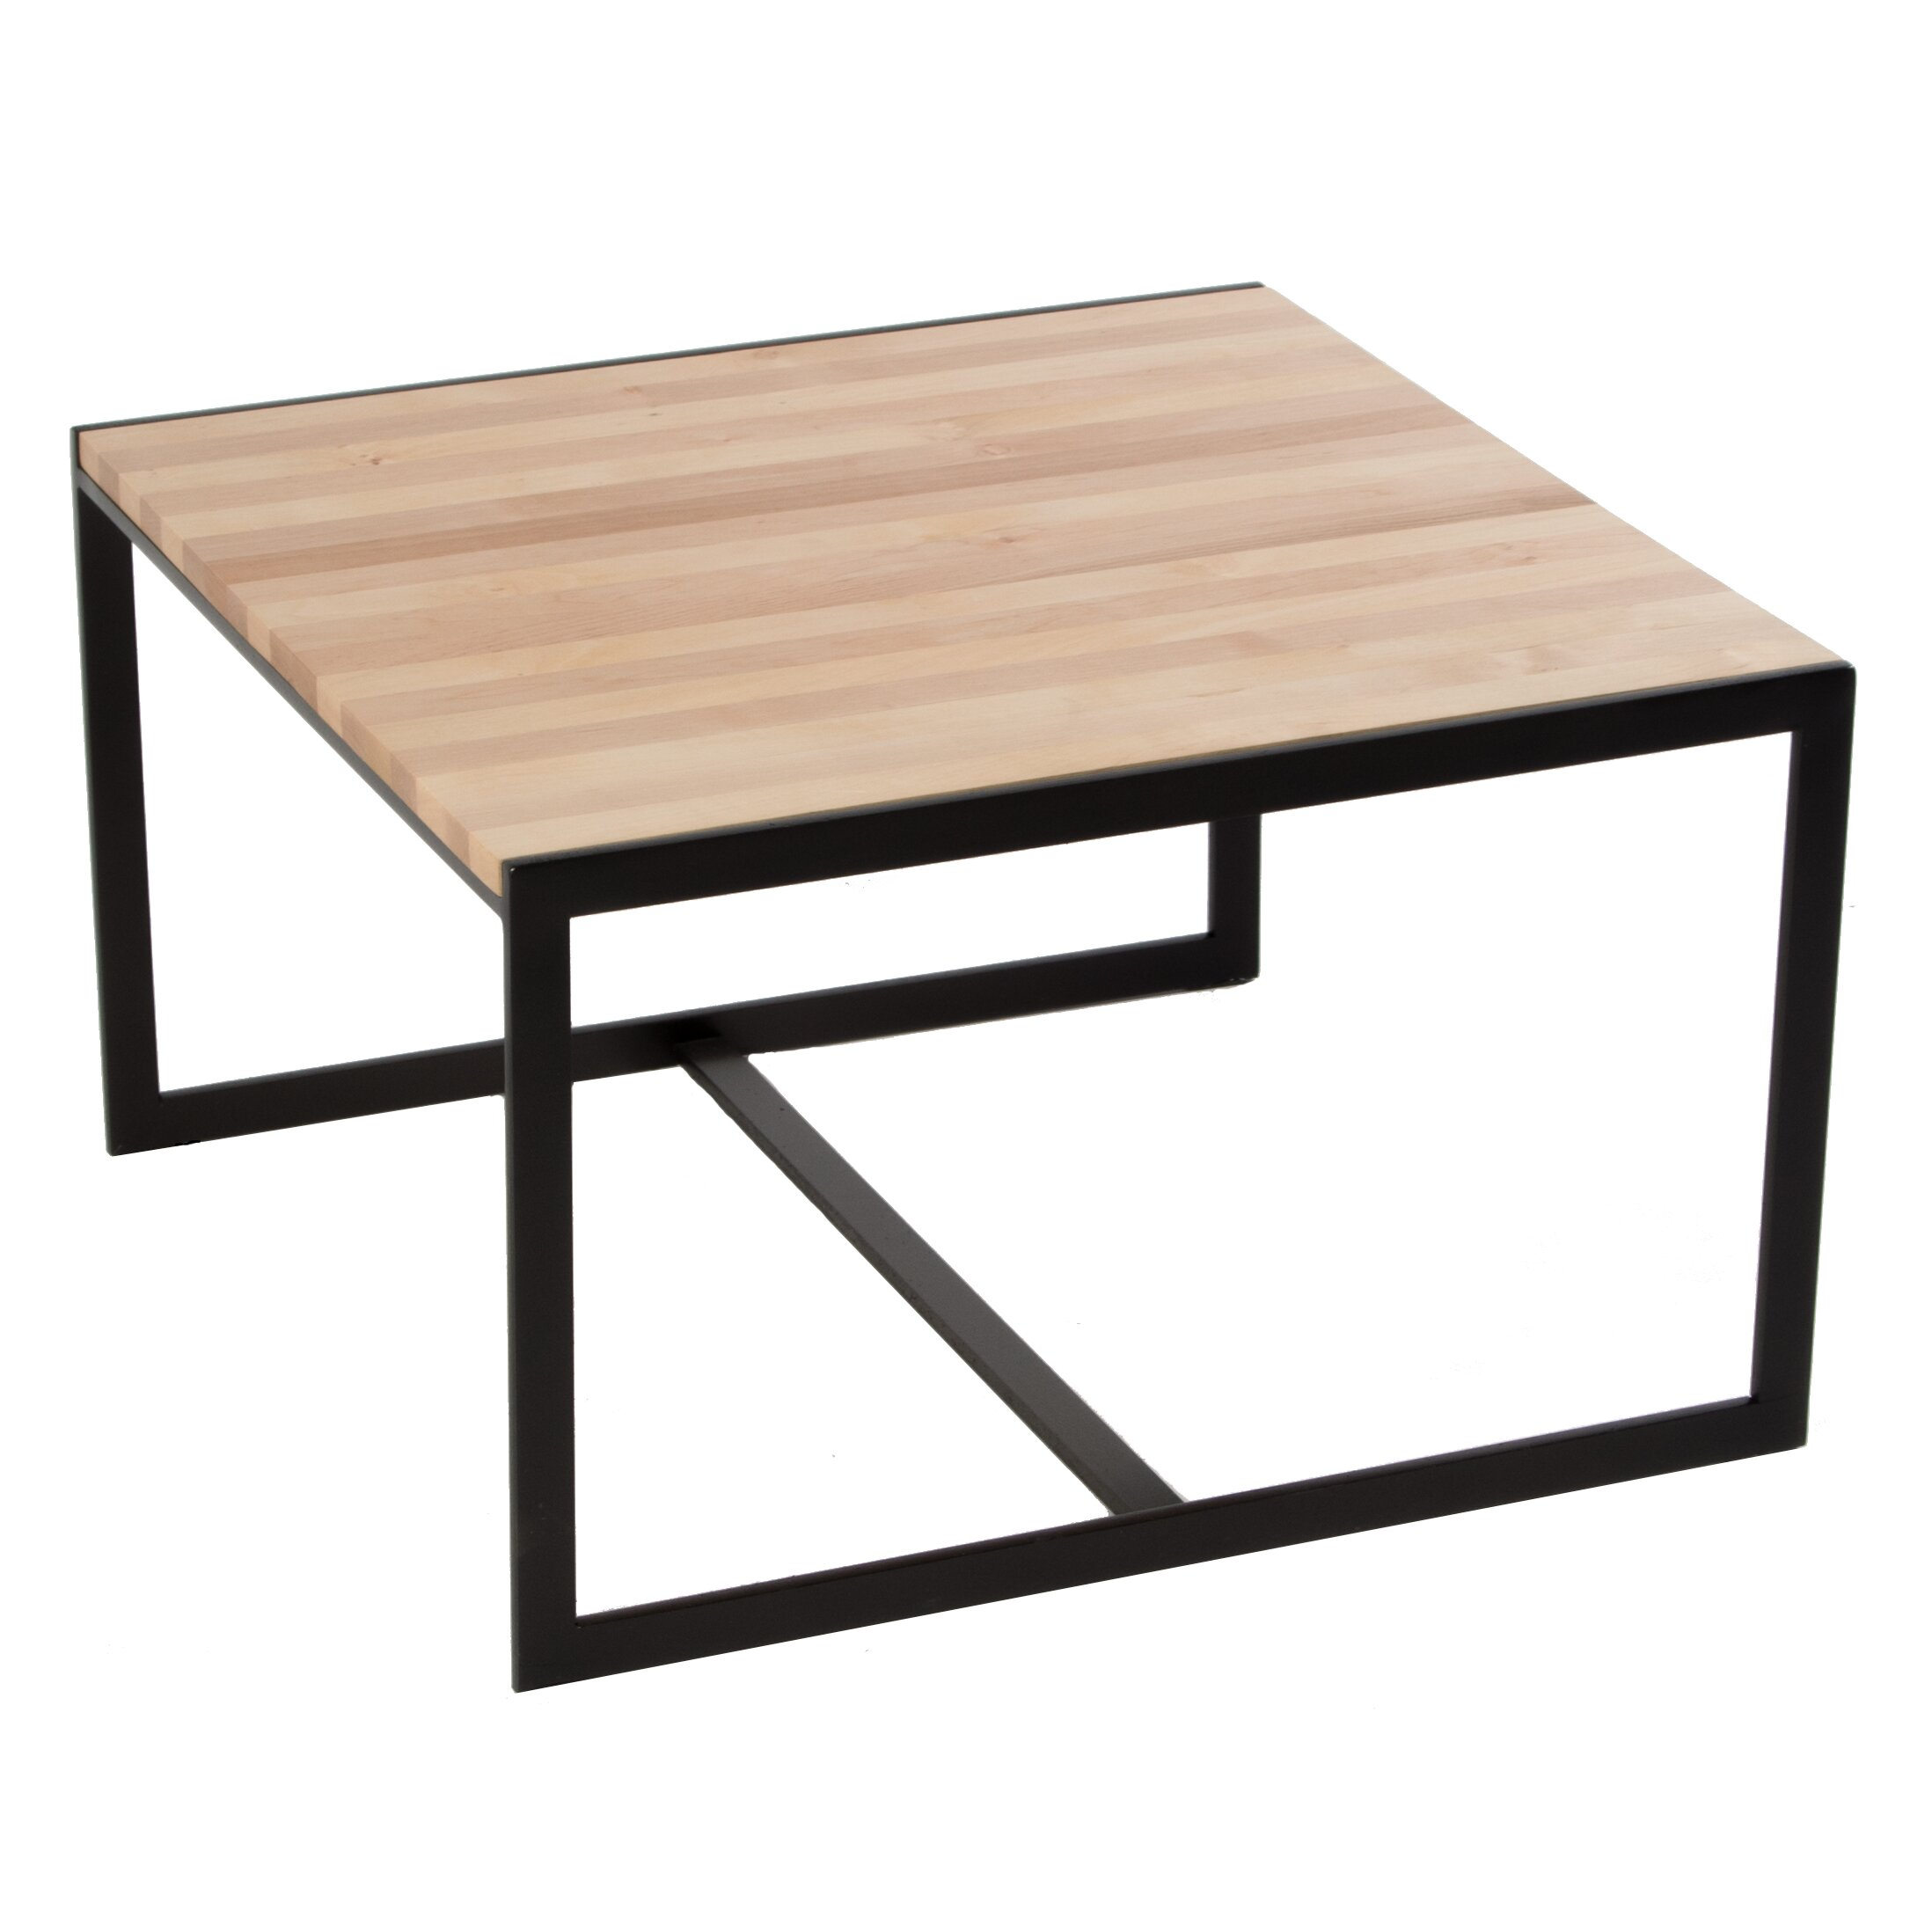 Sterk Furniture pany Ansted Coffee Table